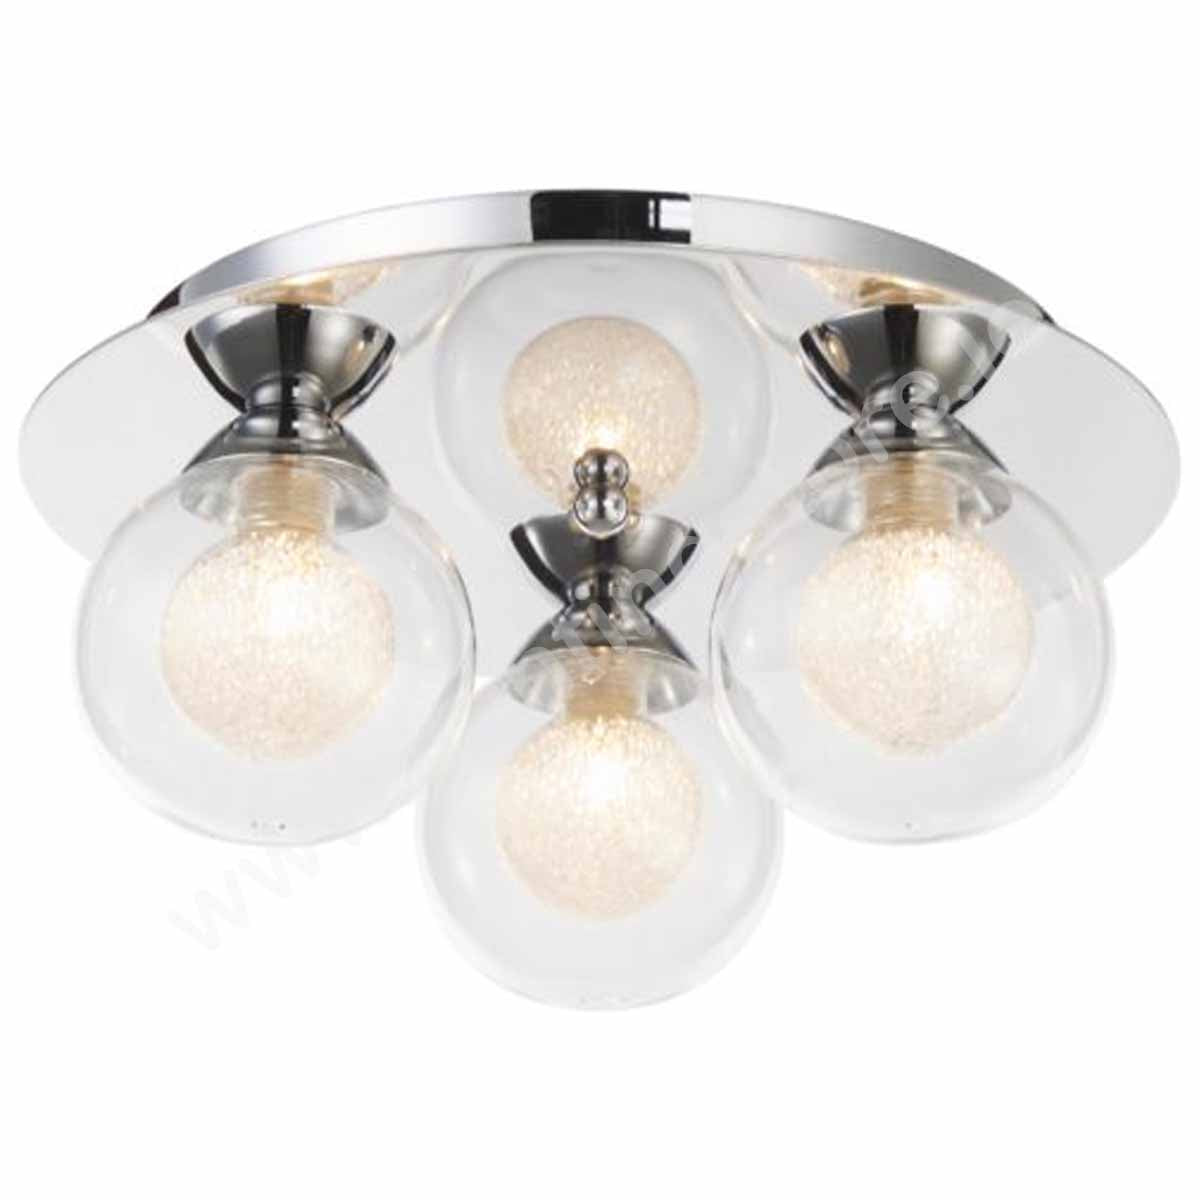 Acqua Globe IP44 Round fitting